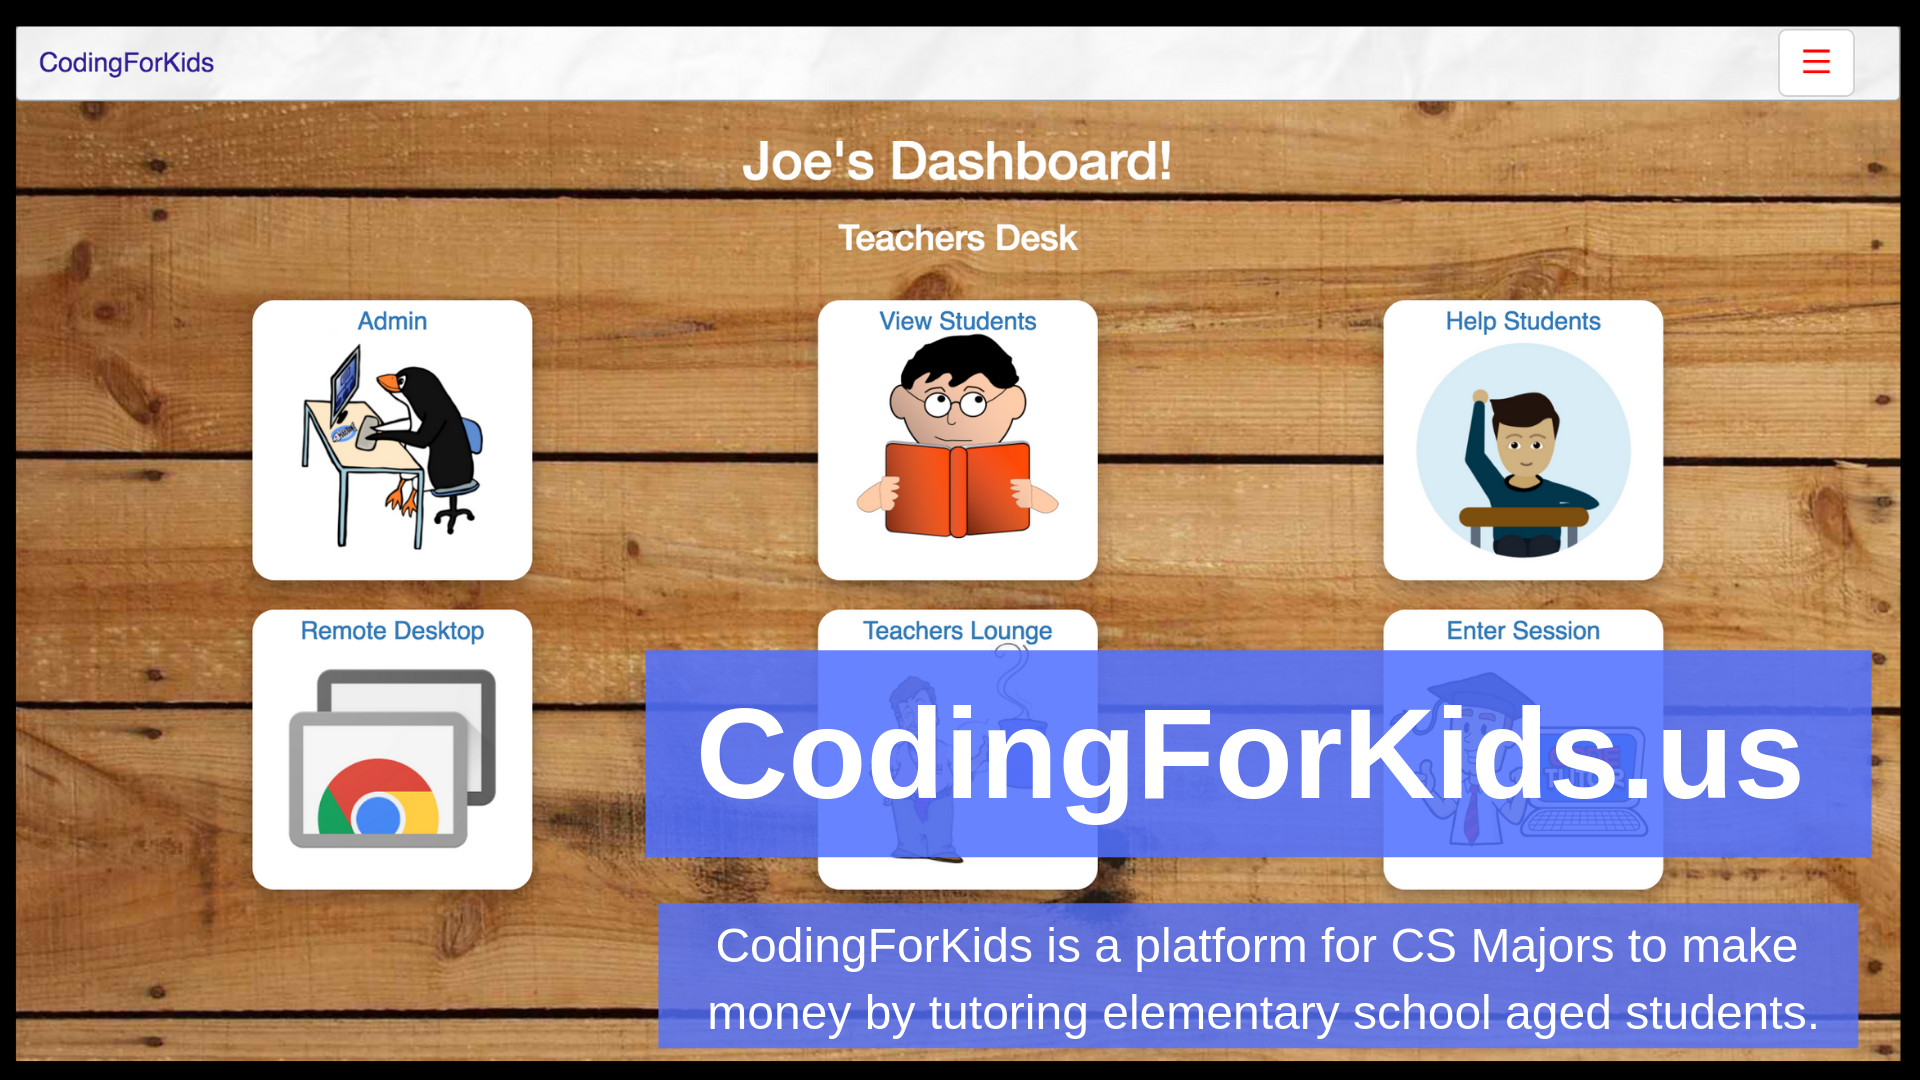 Joe Rezendes - Coding For Kids